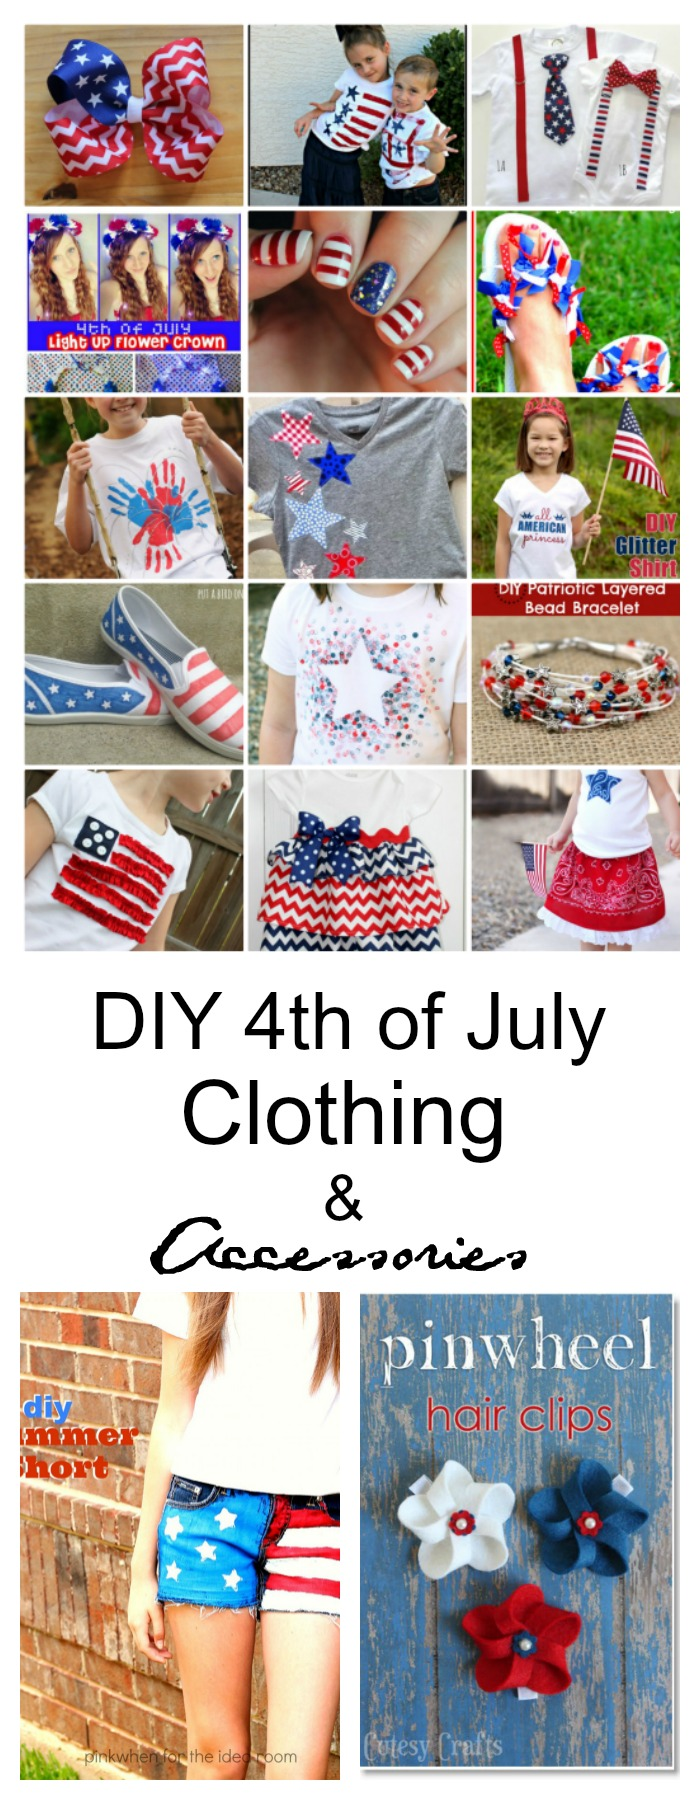 DIY-fourth-of-july-clothing-and-accessories